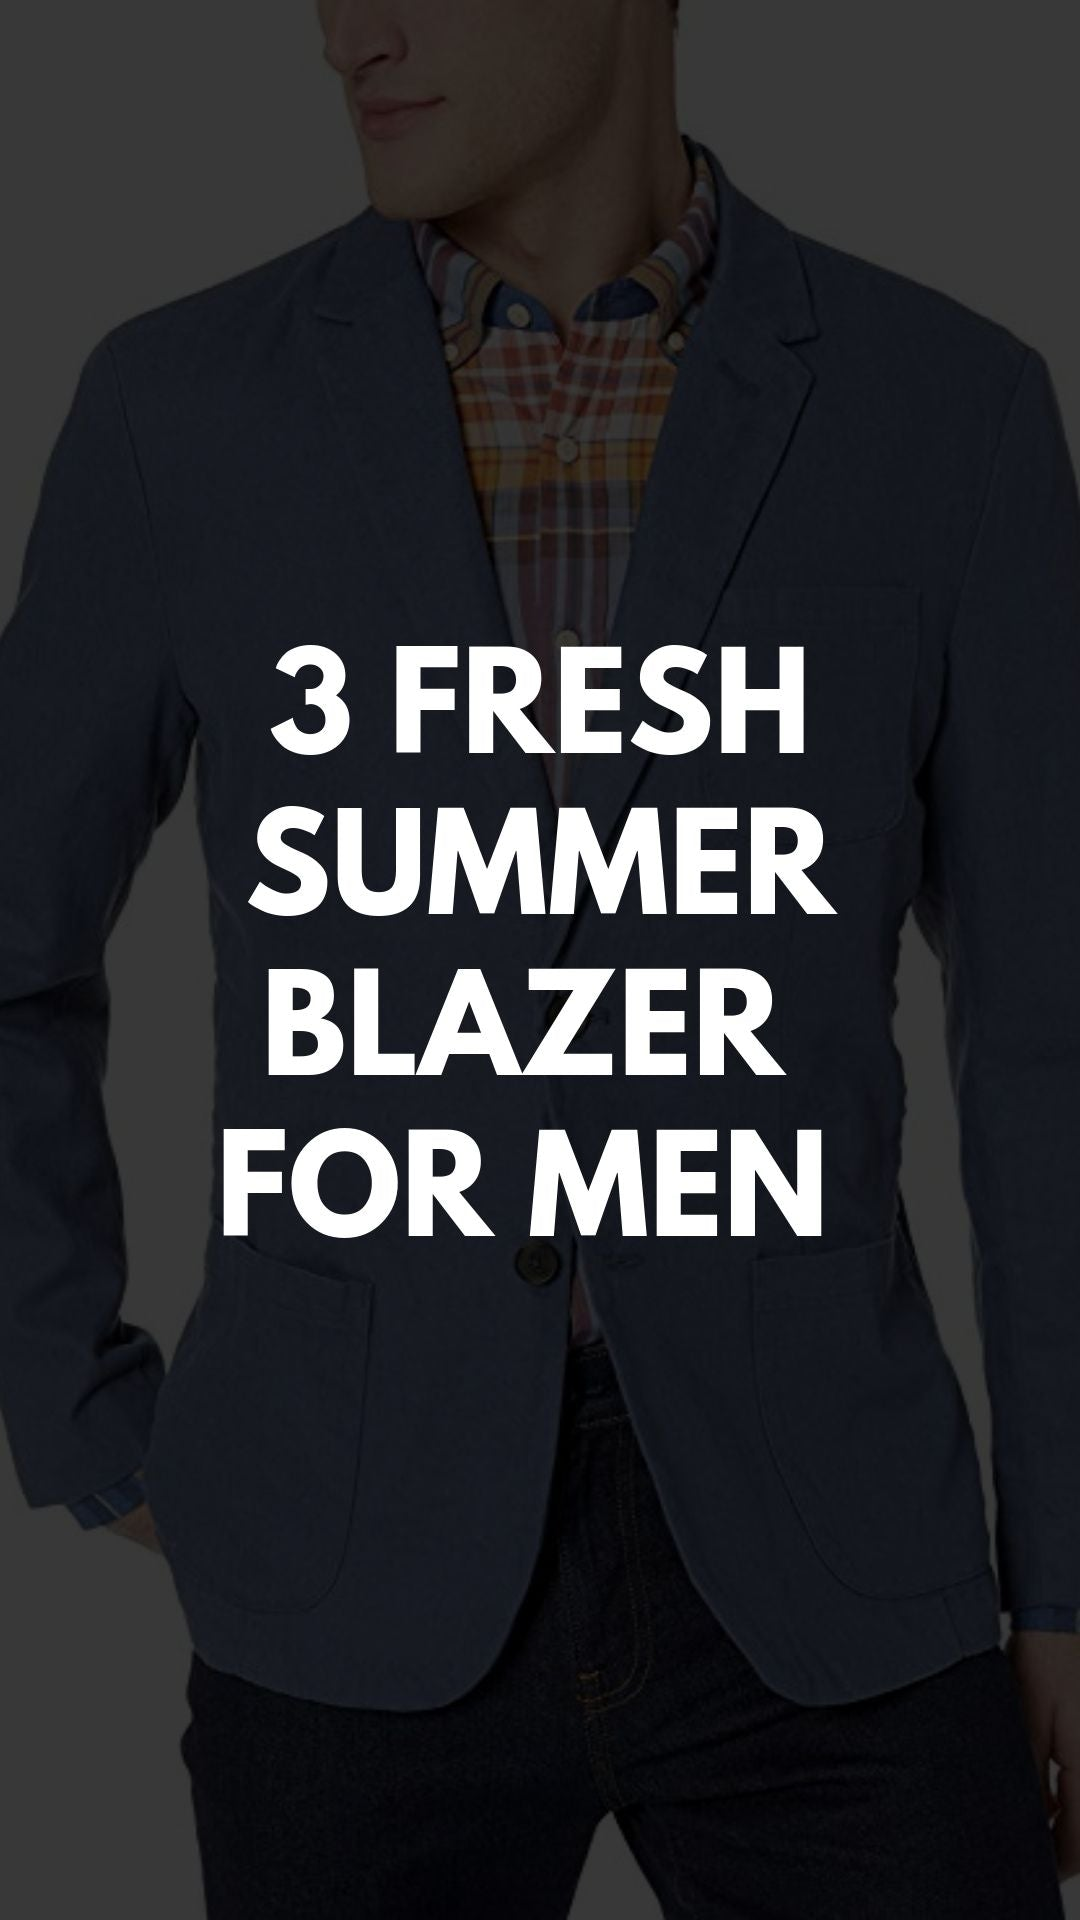 3 FRESH  SUMMER  BLAZER   FOR MEN